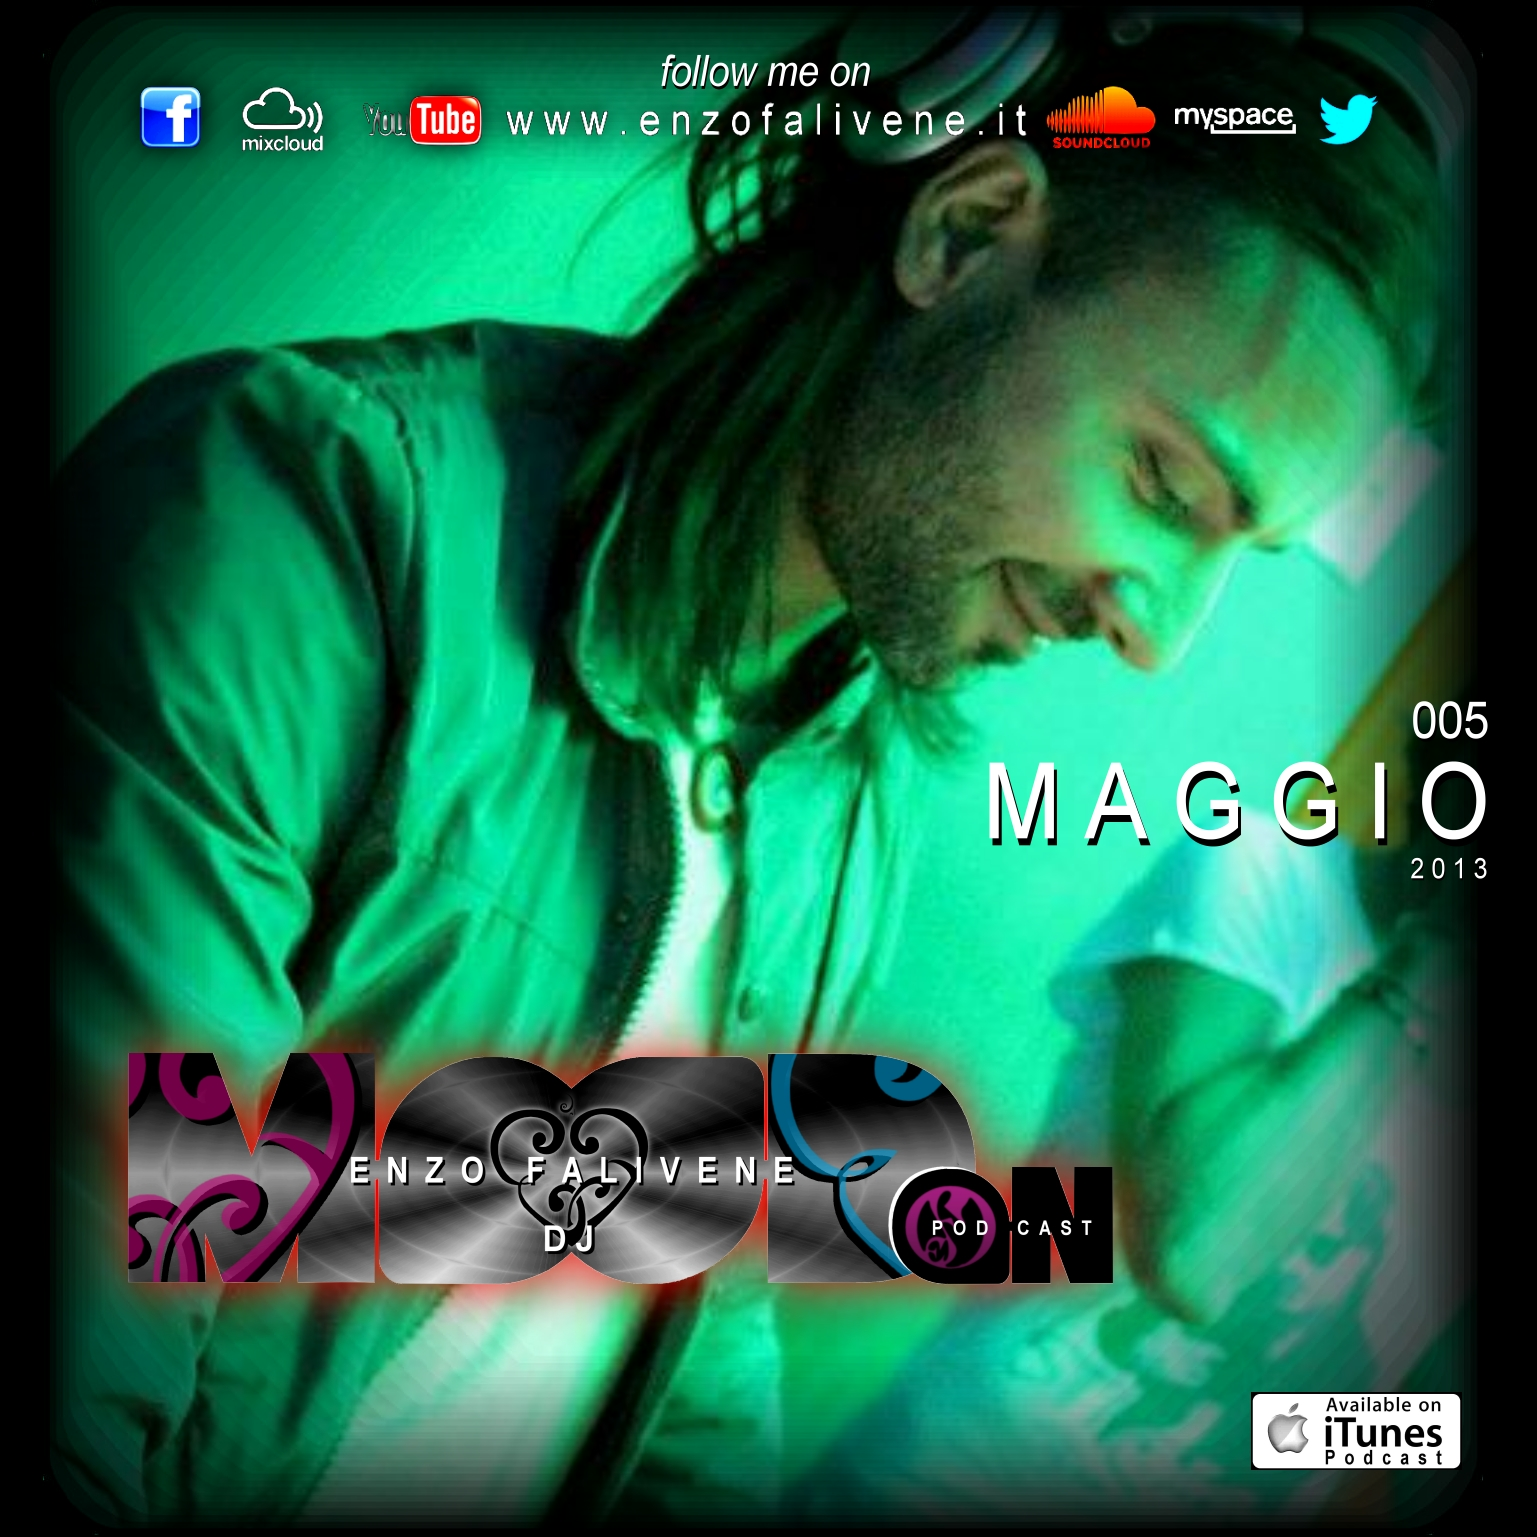 Dj Enzo Falivene-Mood On 005 Maggio 2013